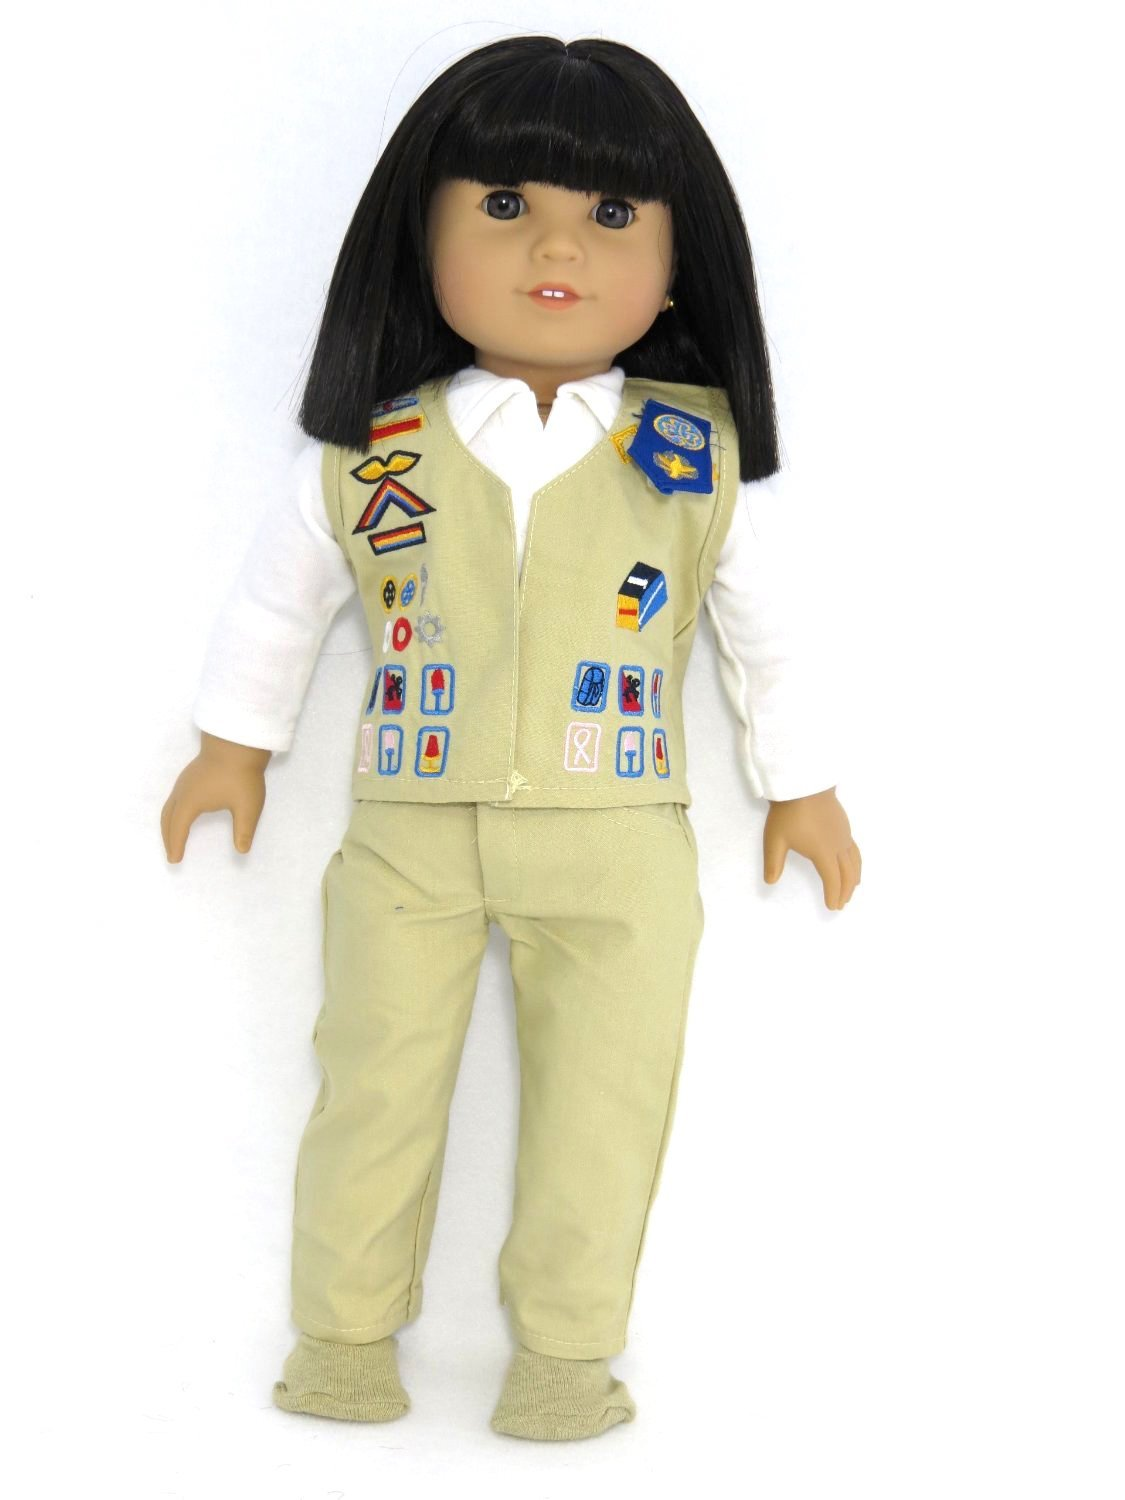 18 Inch Doll Clothes - Cadet girl scout uniform   Fits 18 American Girl Dolls   by American Fashion World